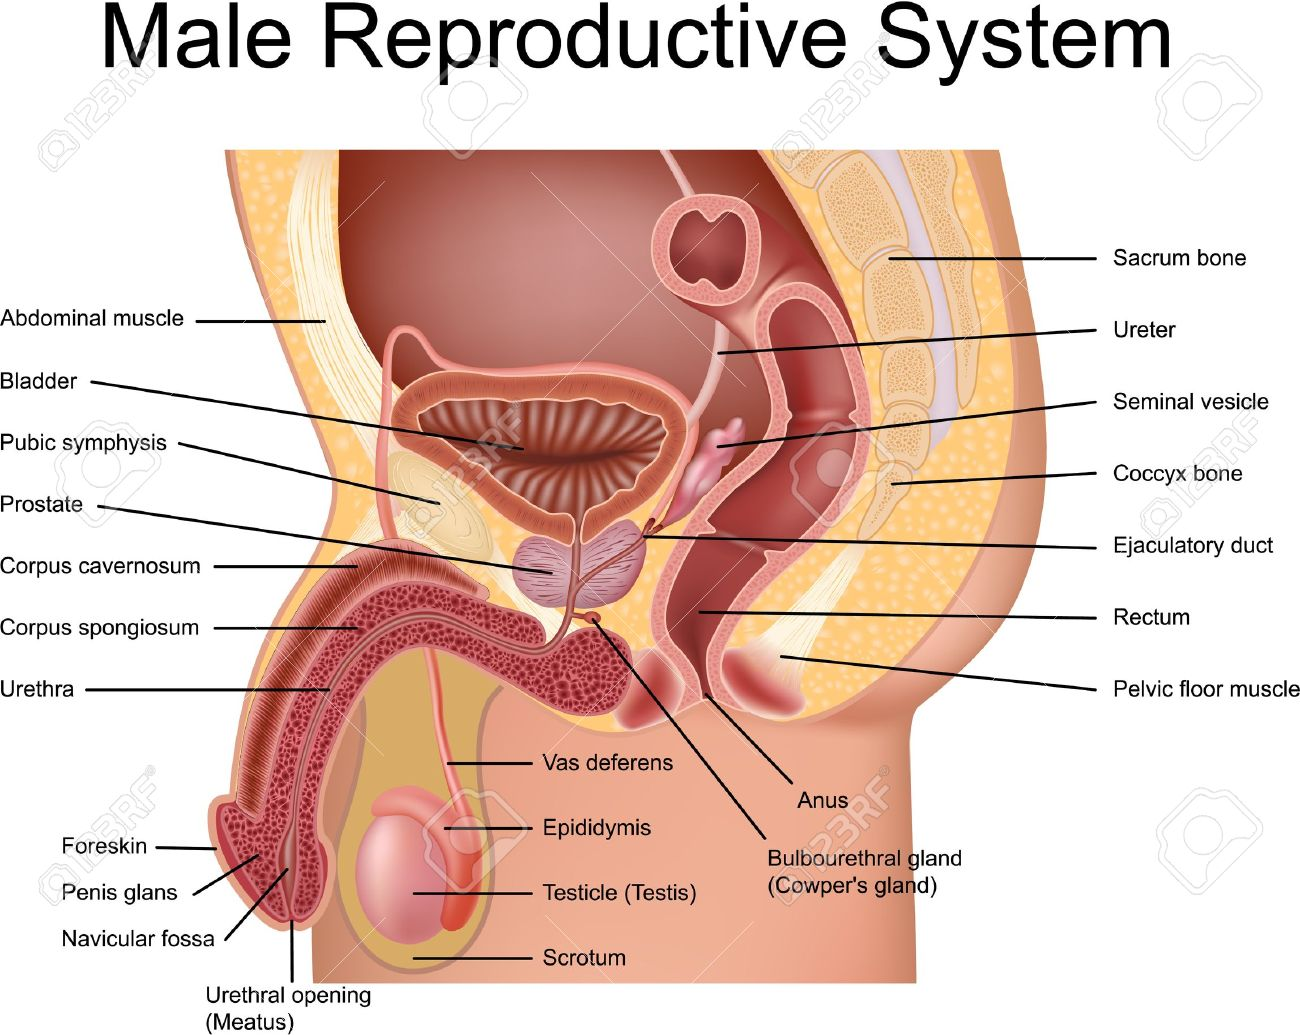 Male reproductive system cross section view royalty free cliparts male reproductive system cross section view stock vector 13919264 pooptronica Images